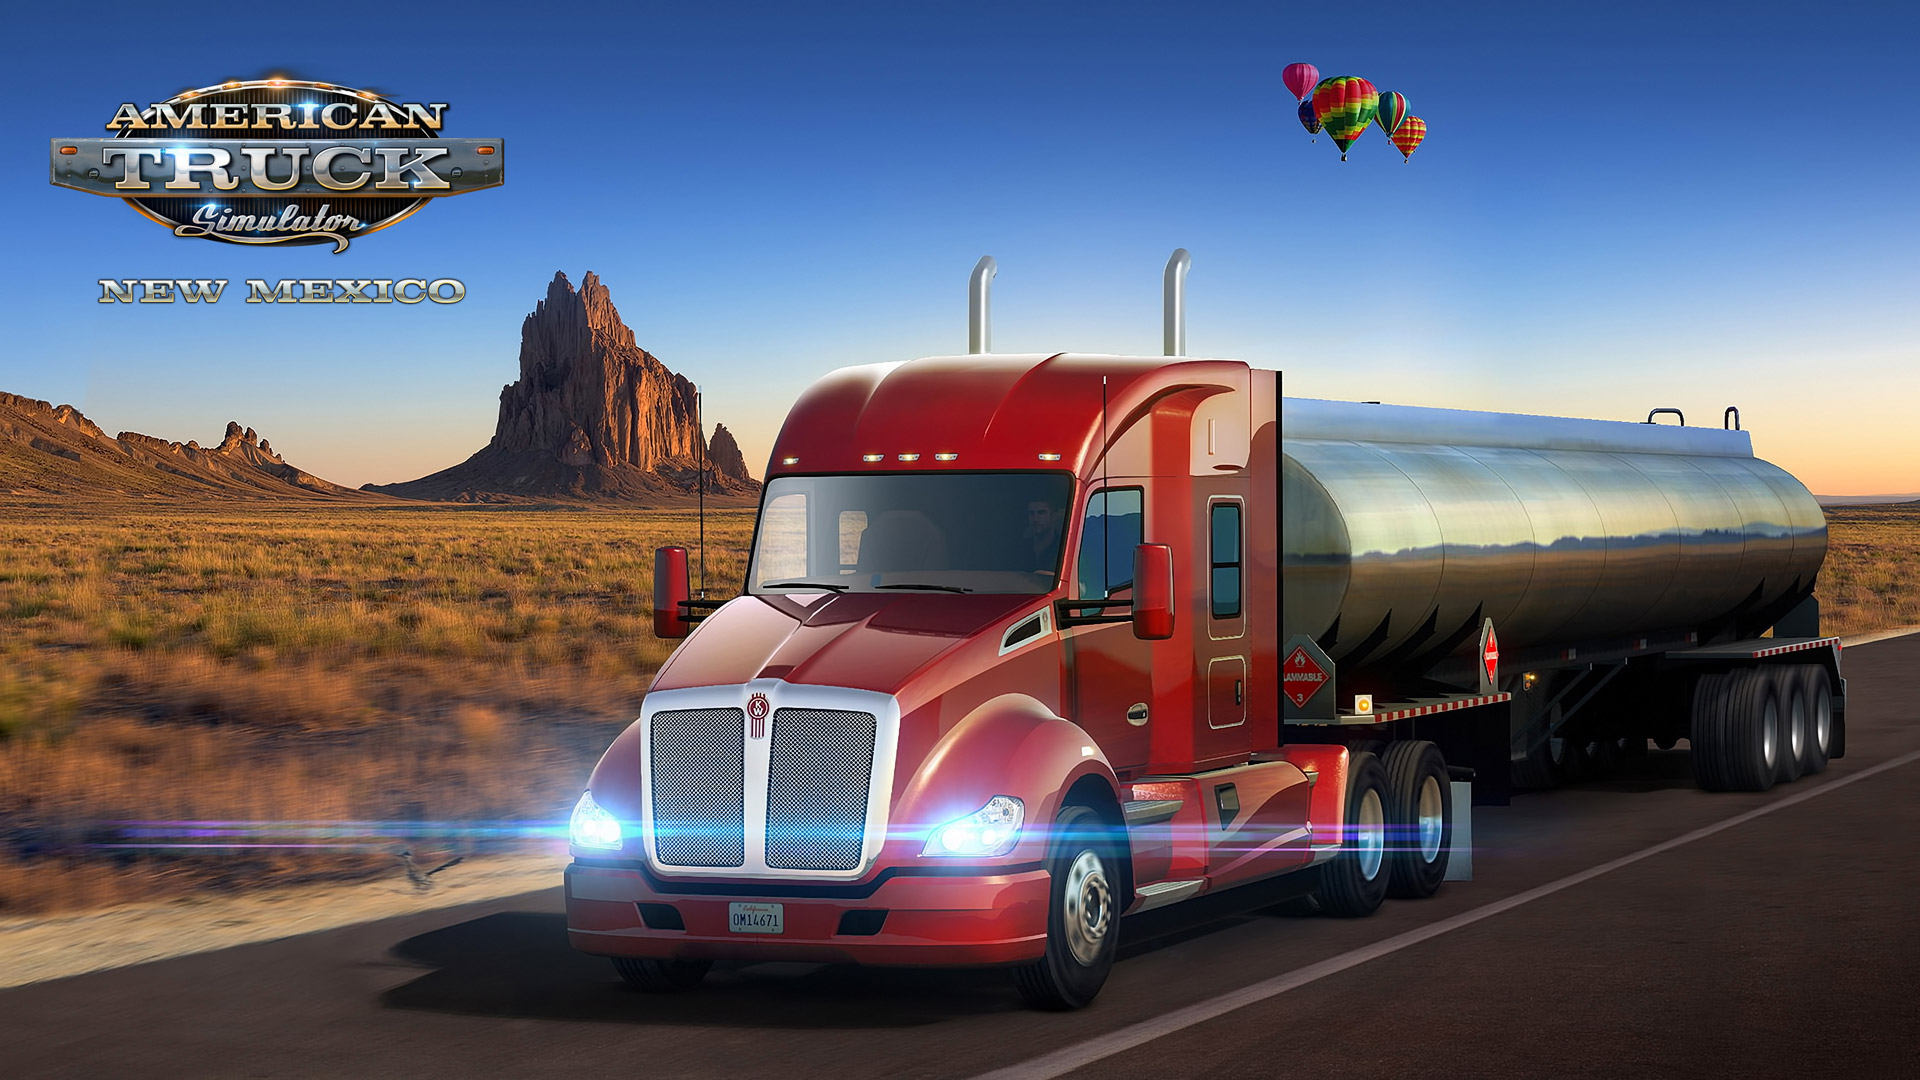 Free American Truck Simulator Wallpaper in 1920x1080